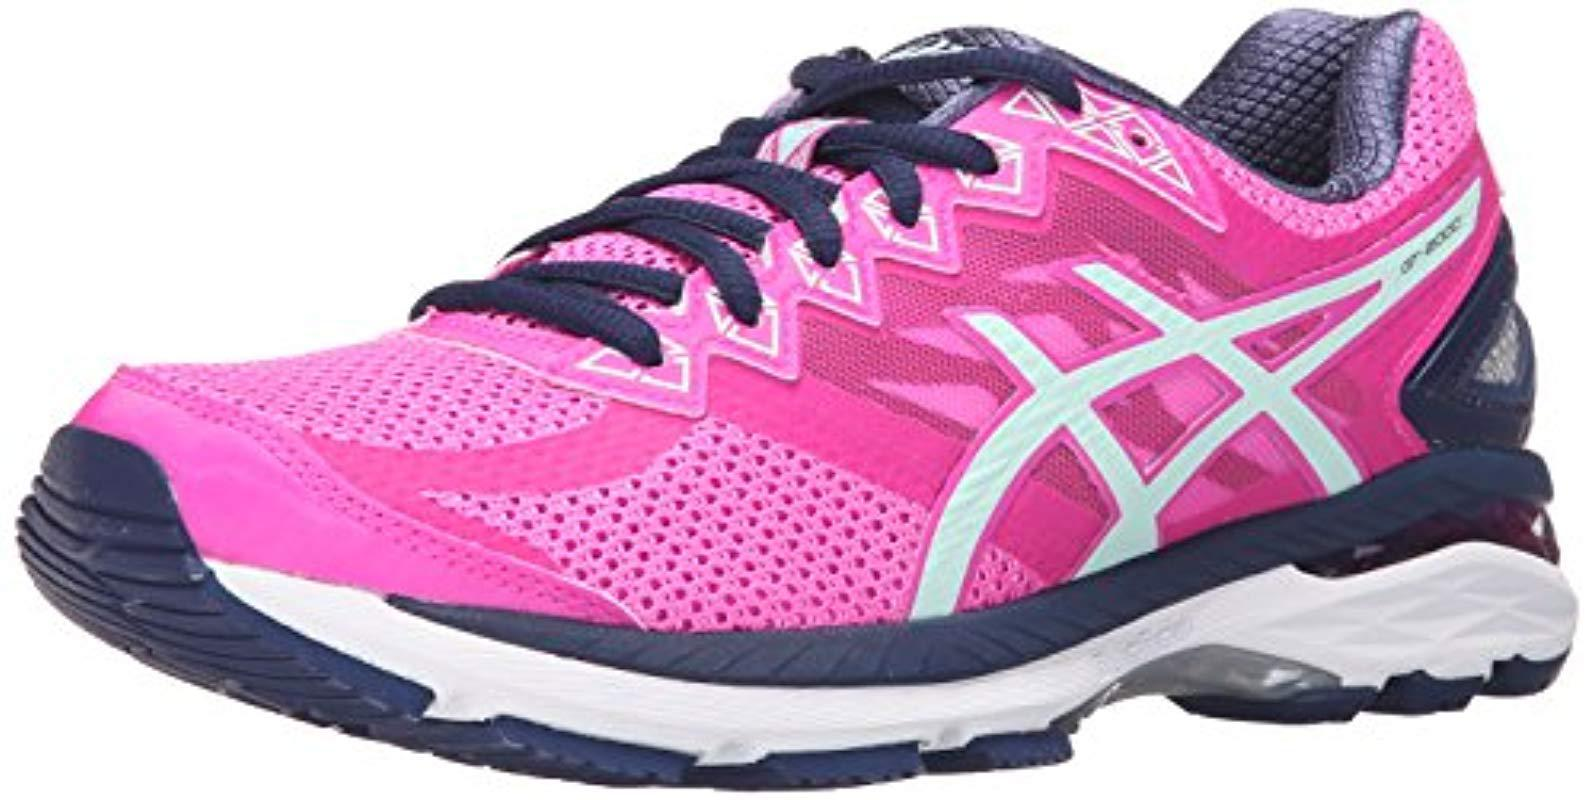 7bedf7e92e439 Lyst - Asics Gt-2000 4 Running Shoe in Pink - Save 34%